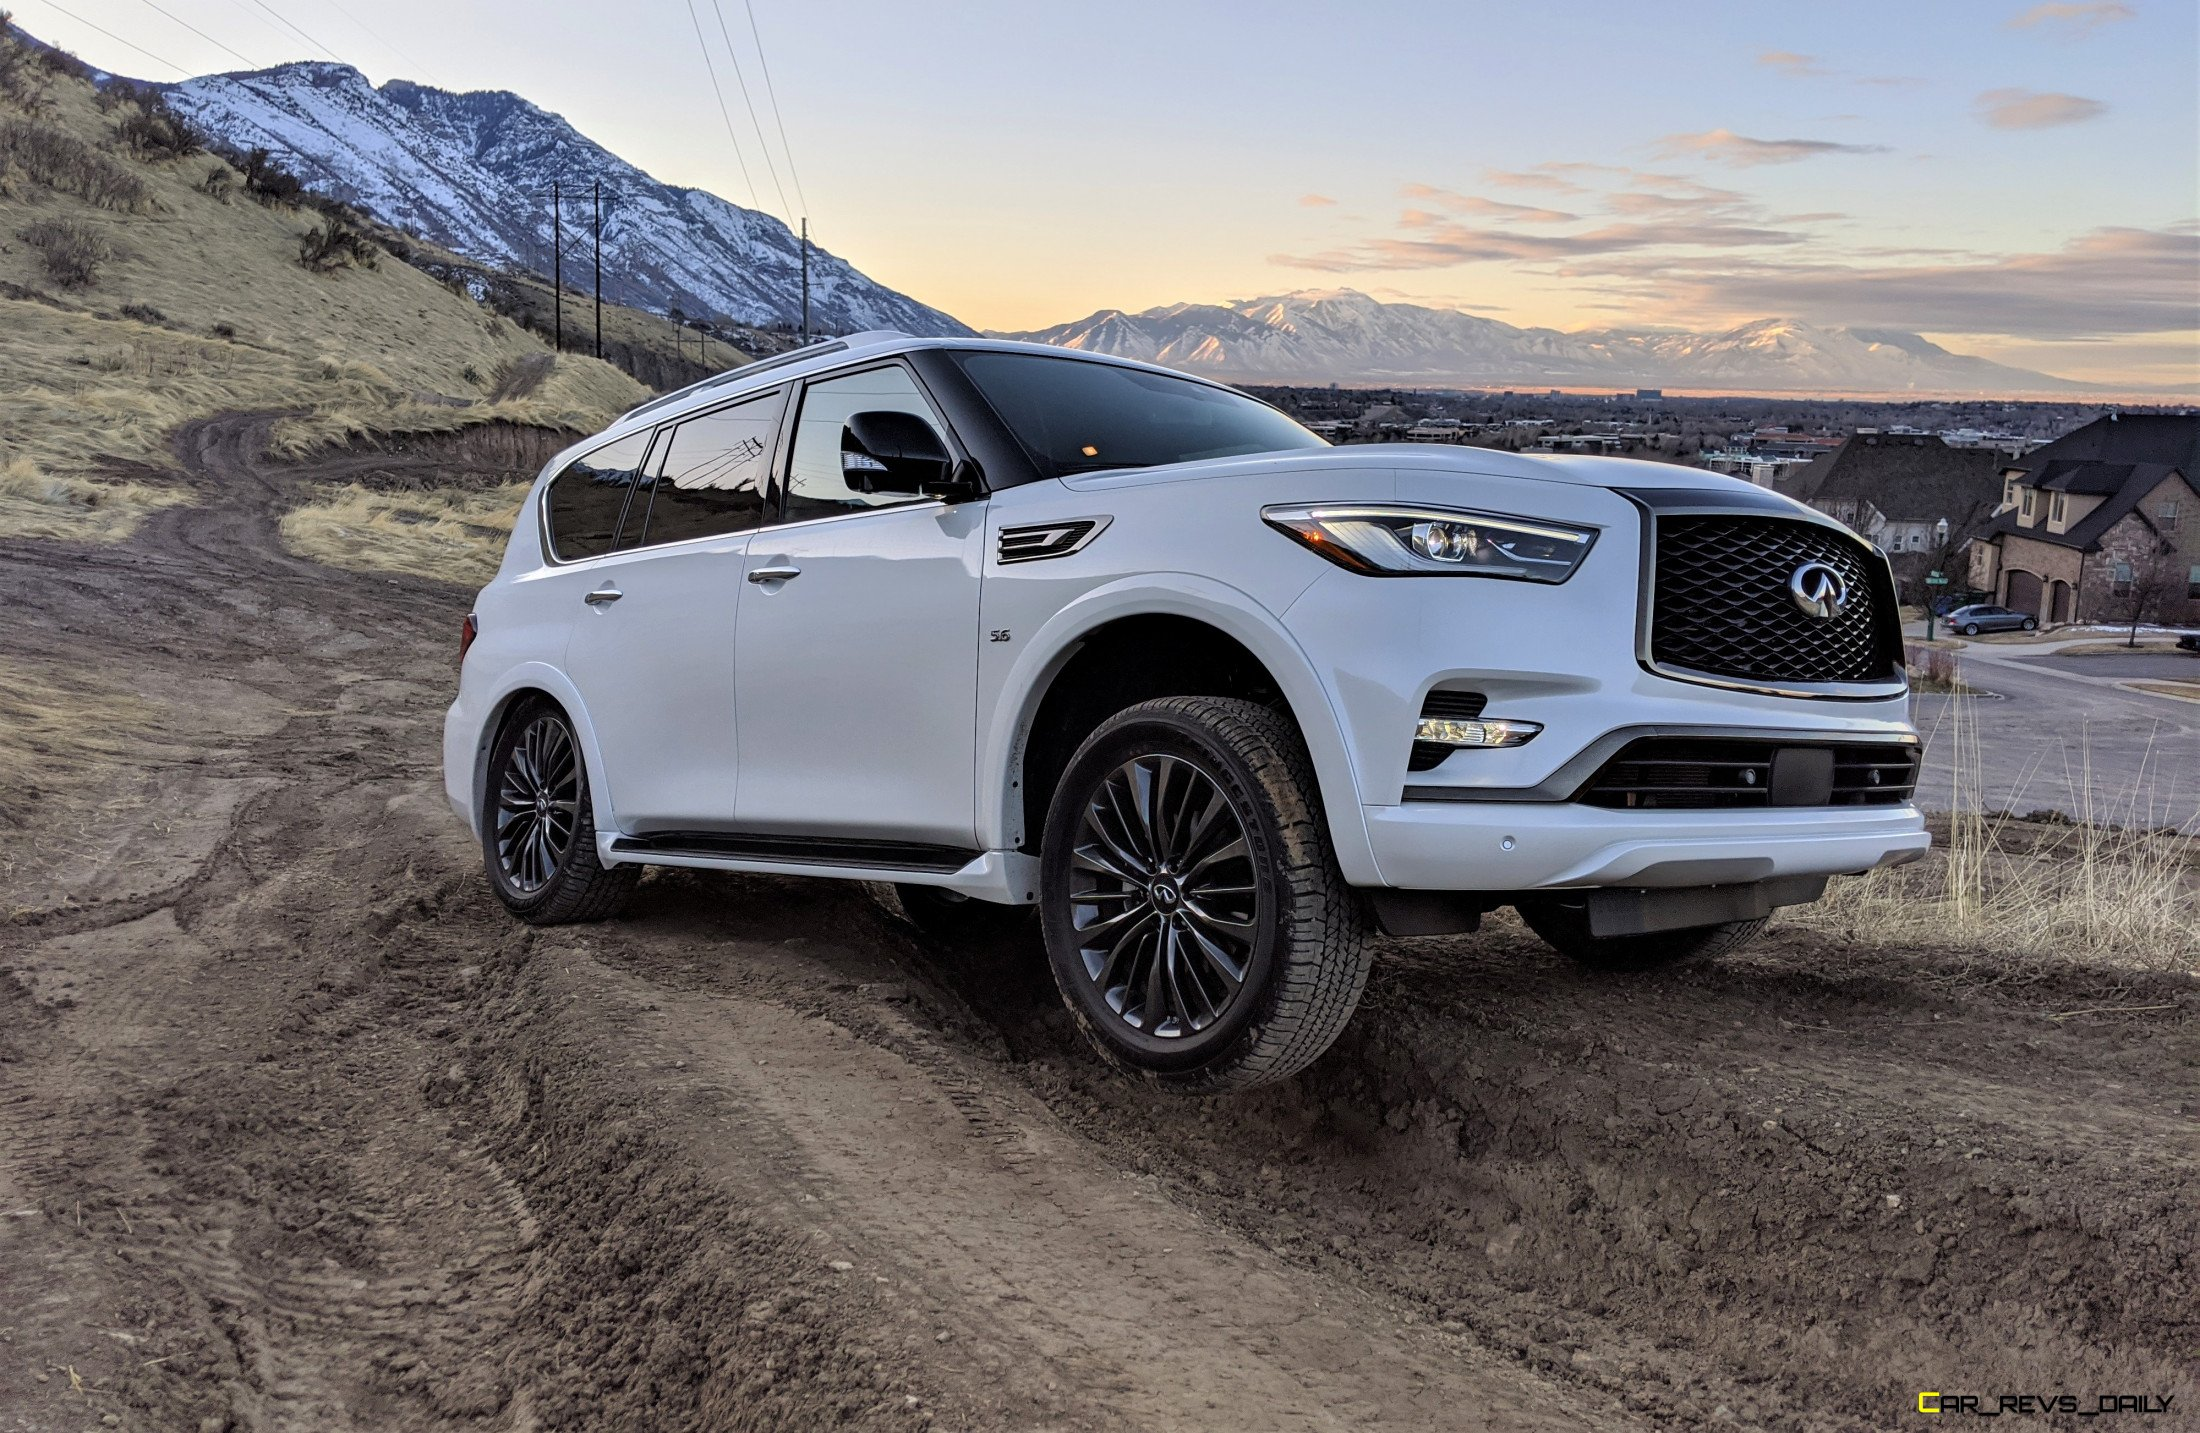 2020 Infiniti Qx80 Edition 30 Off Road Test Review By Matt Barnes Best Of 2020 Awards Car Revs Daily Com